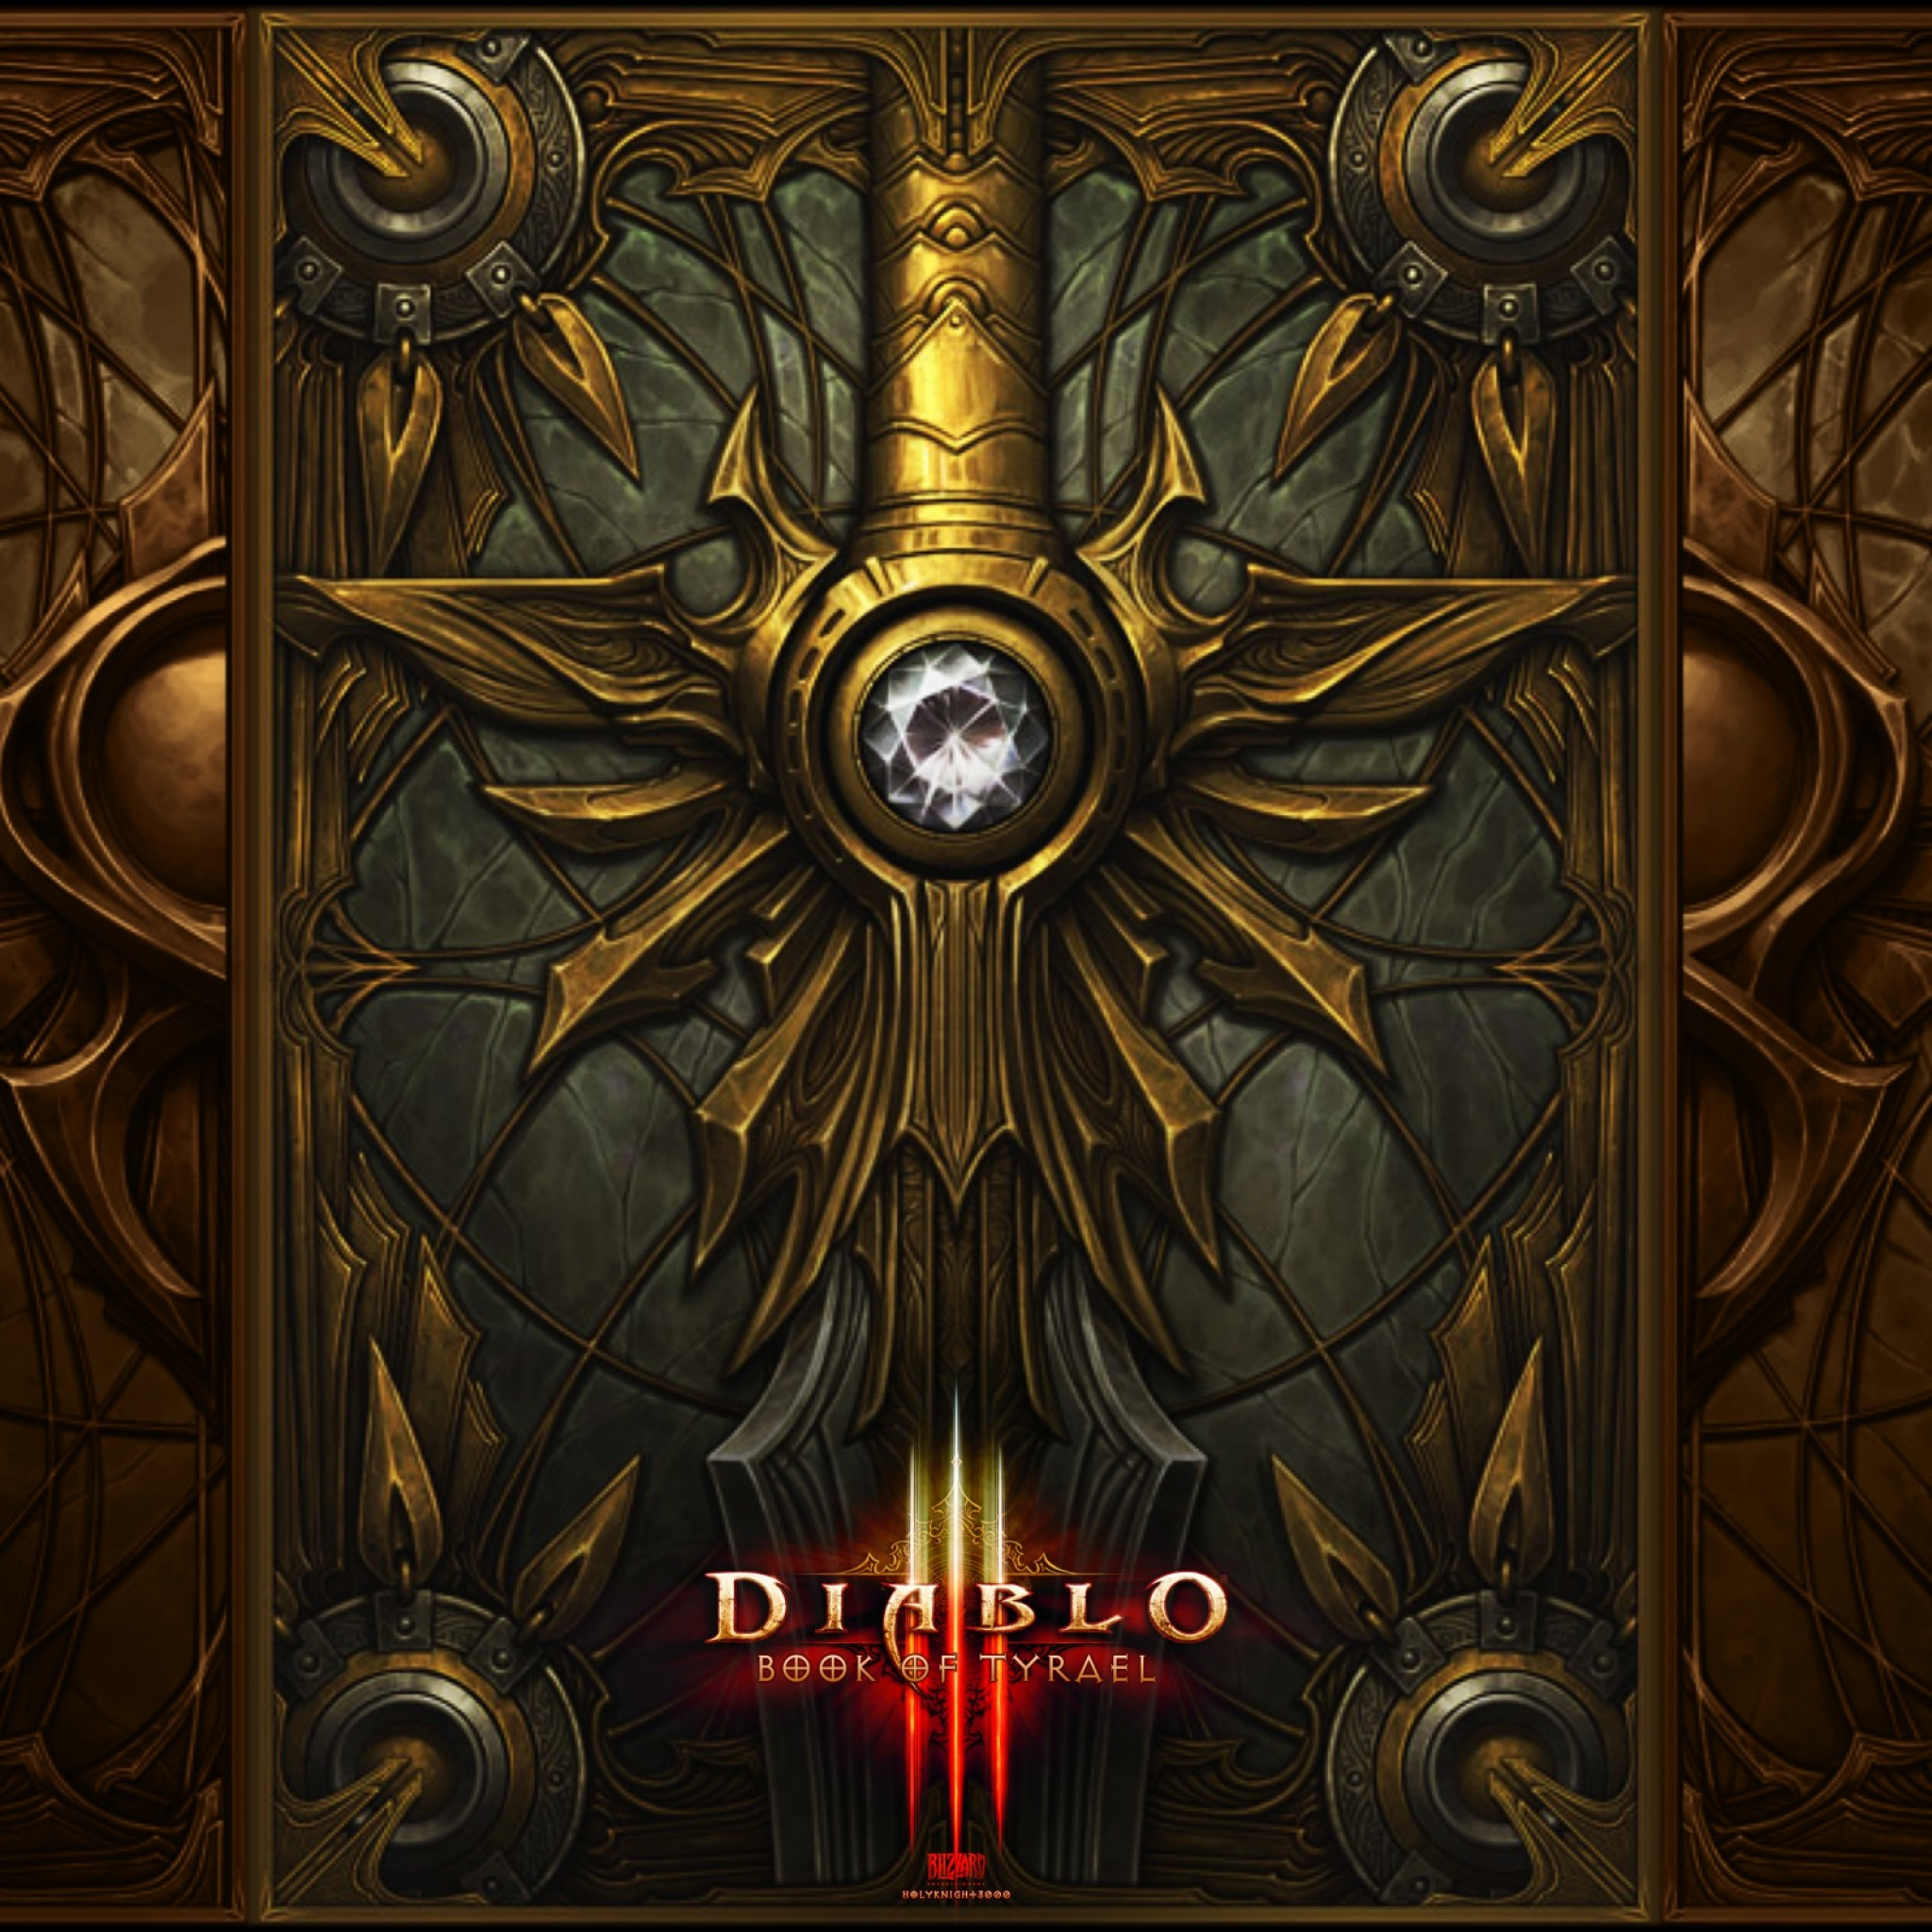 Diablo 3 Wallpaper 1920x1080: Diablo 2 Wallpaper (66+ Images